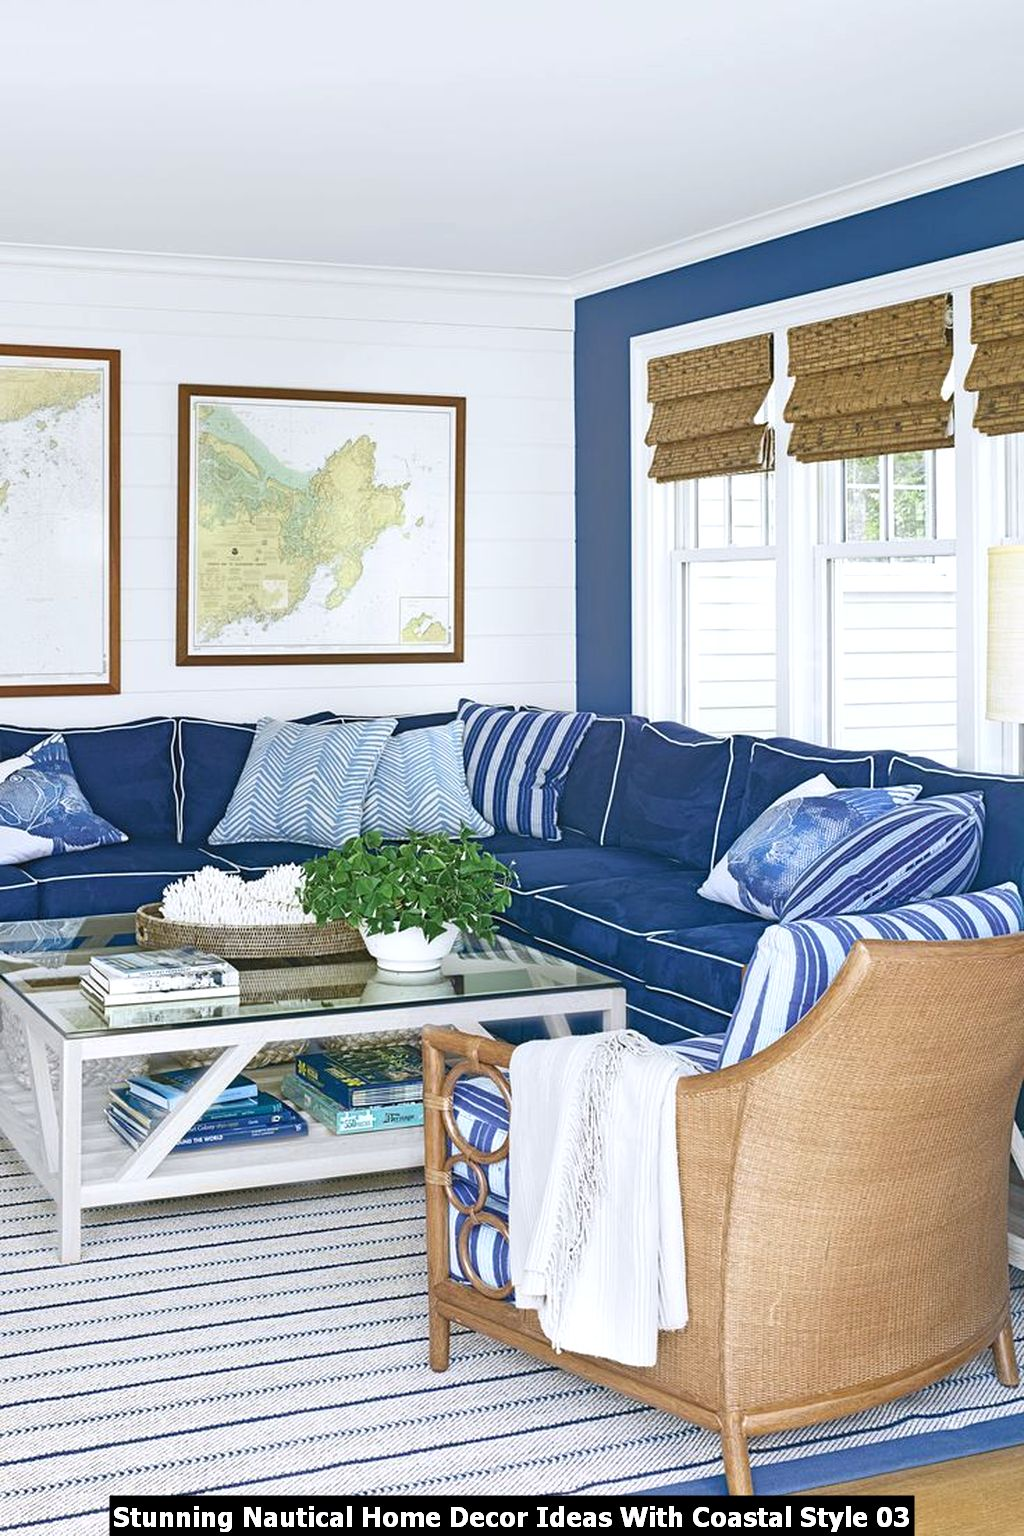 Stunning Nautical Home Decor Ideas With Coastal Style 03